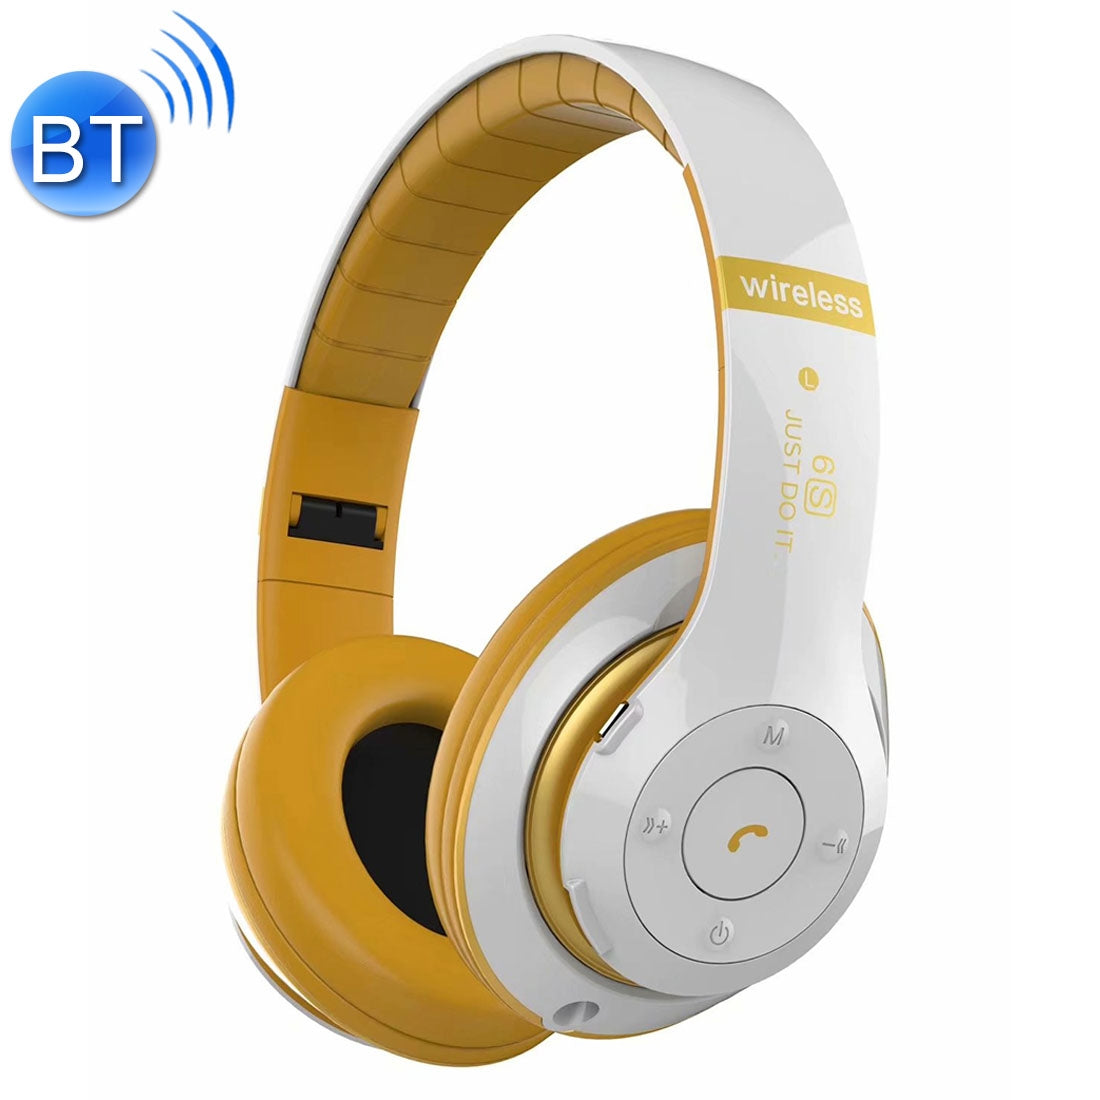 V30 Wireless Bluetooth 4.2 Headphone with Mic & FM & TF Card & Handfree Function, For iPhone, iPad, iPod, Samsung, HTC, Sony, Huawei, Xiaomi and other Audio Devices(White)